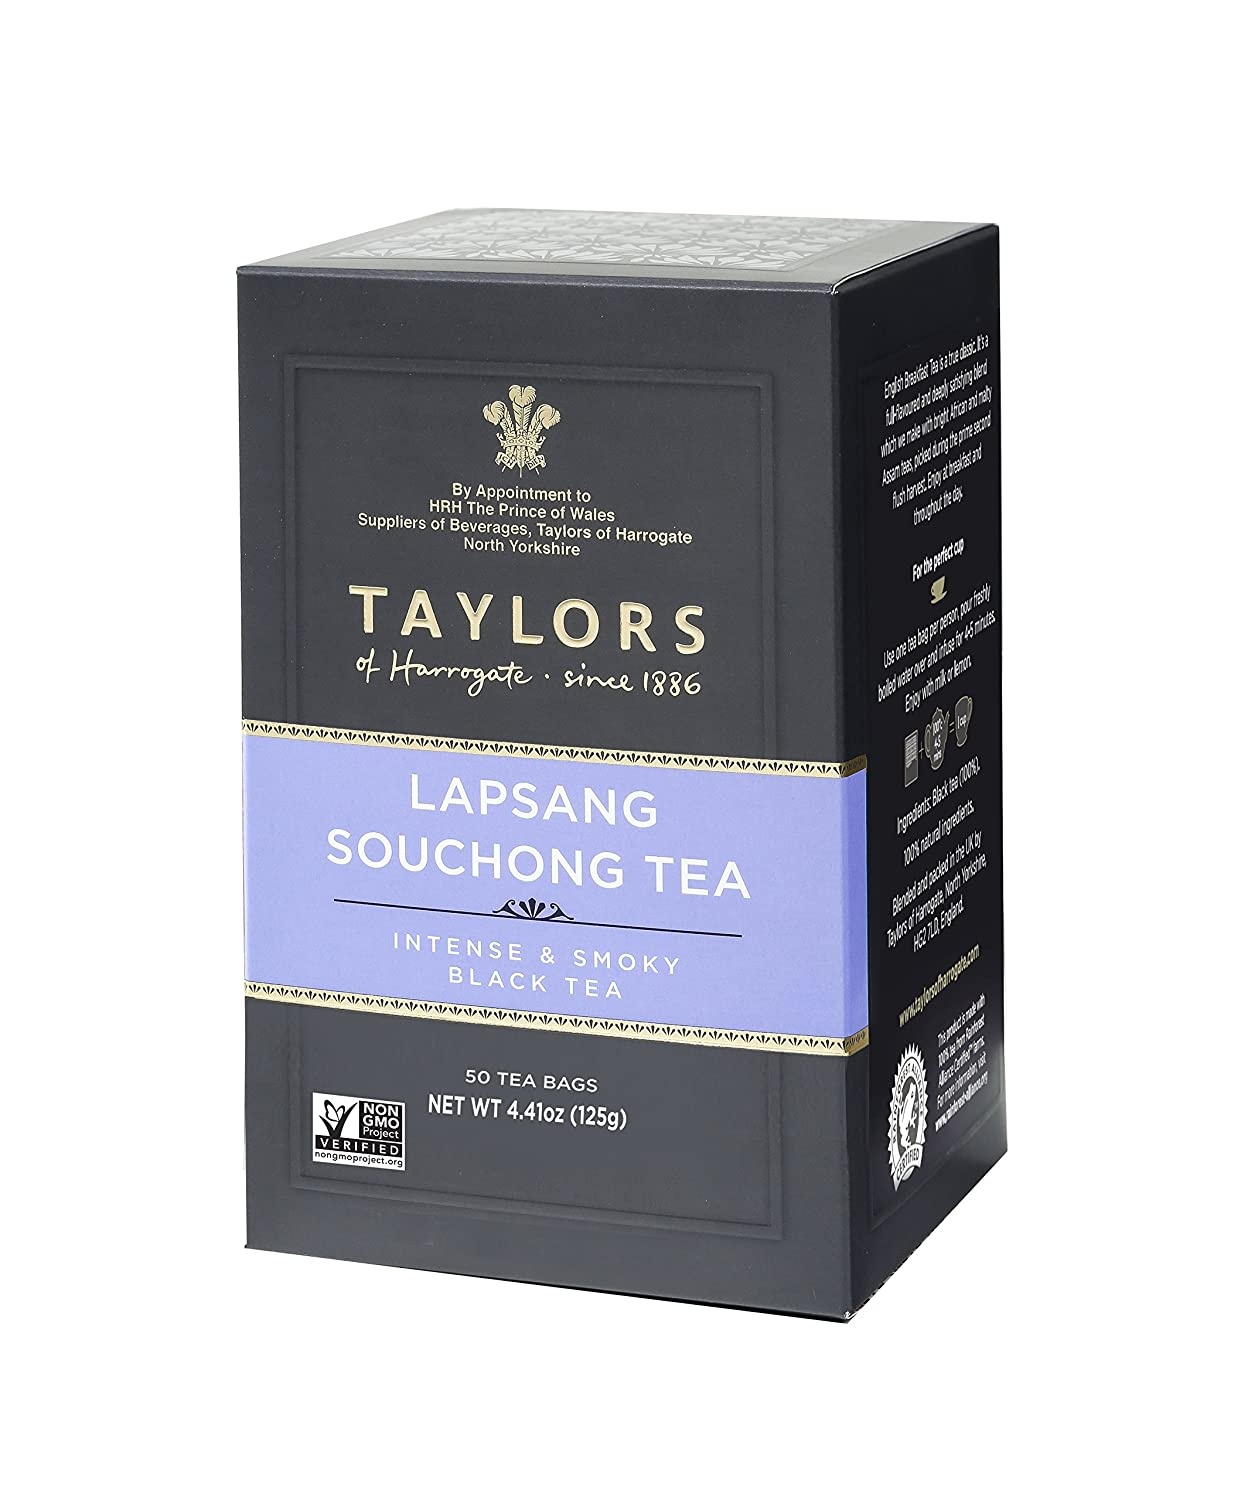 Taylors of Harrogate Lapsang Souchong, 50 Teabags